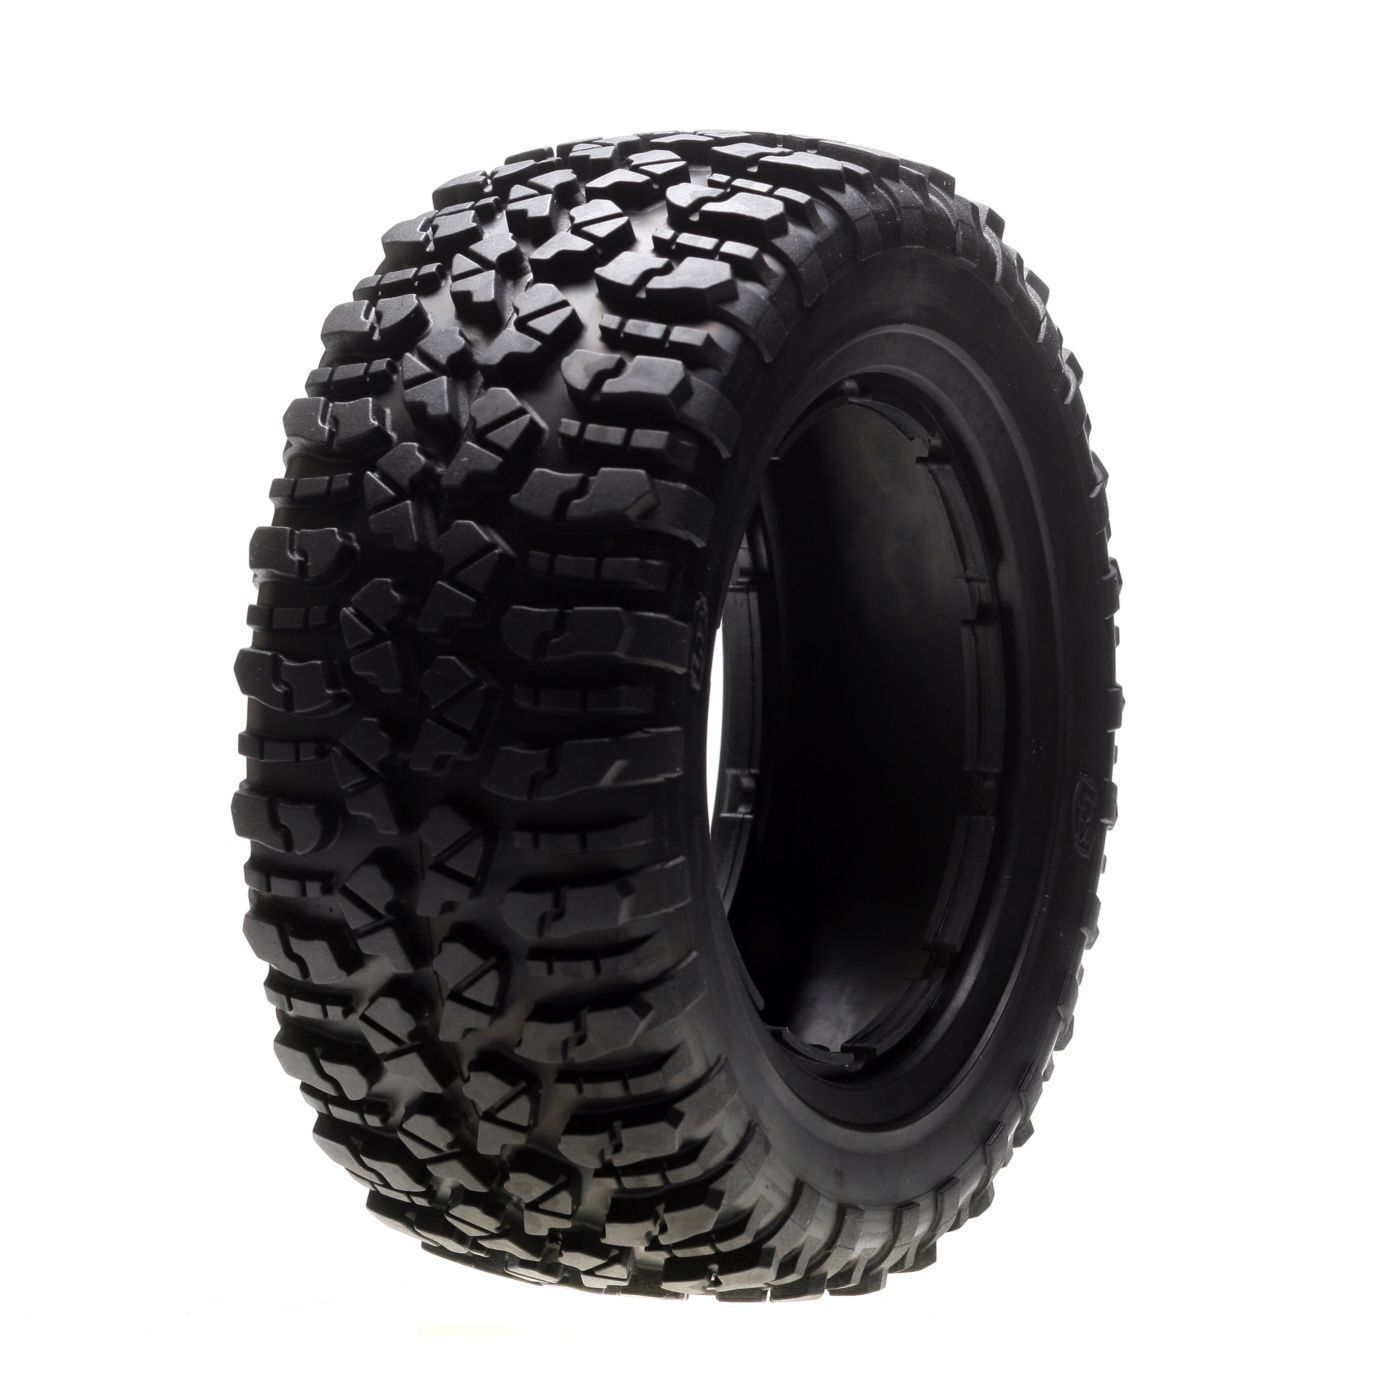 LOSI NOMAD 1 LEFT & 1 RIGHT (a pair) FIRM TYRE SET 5IVE-T SHORT COURSE LOSB7240